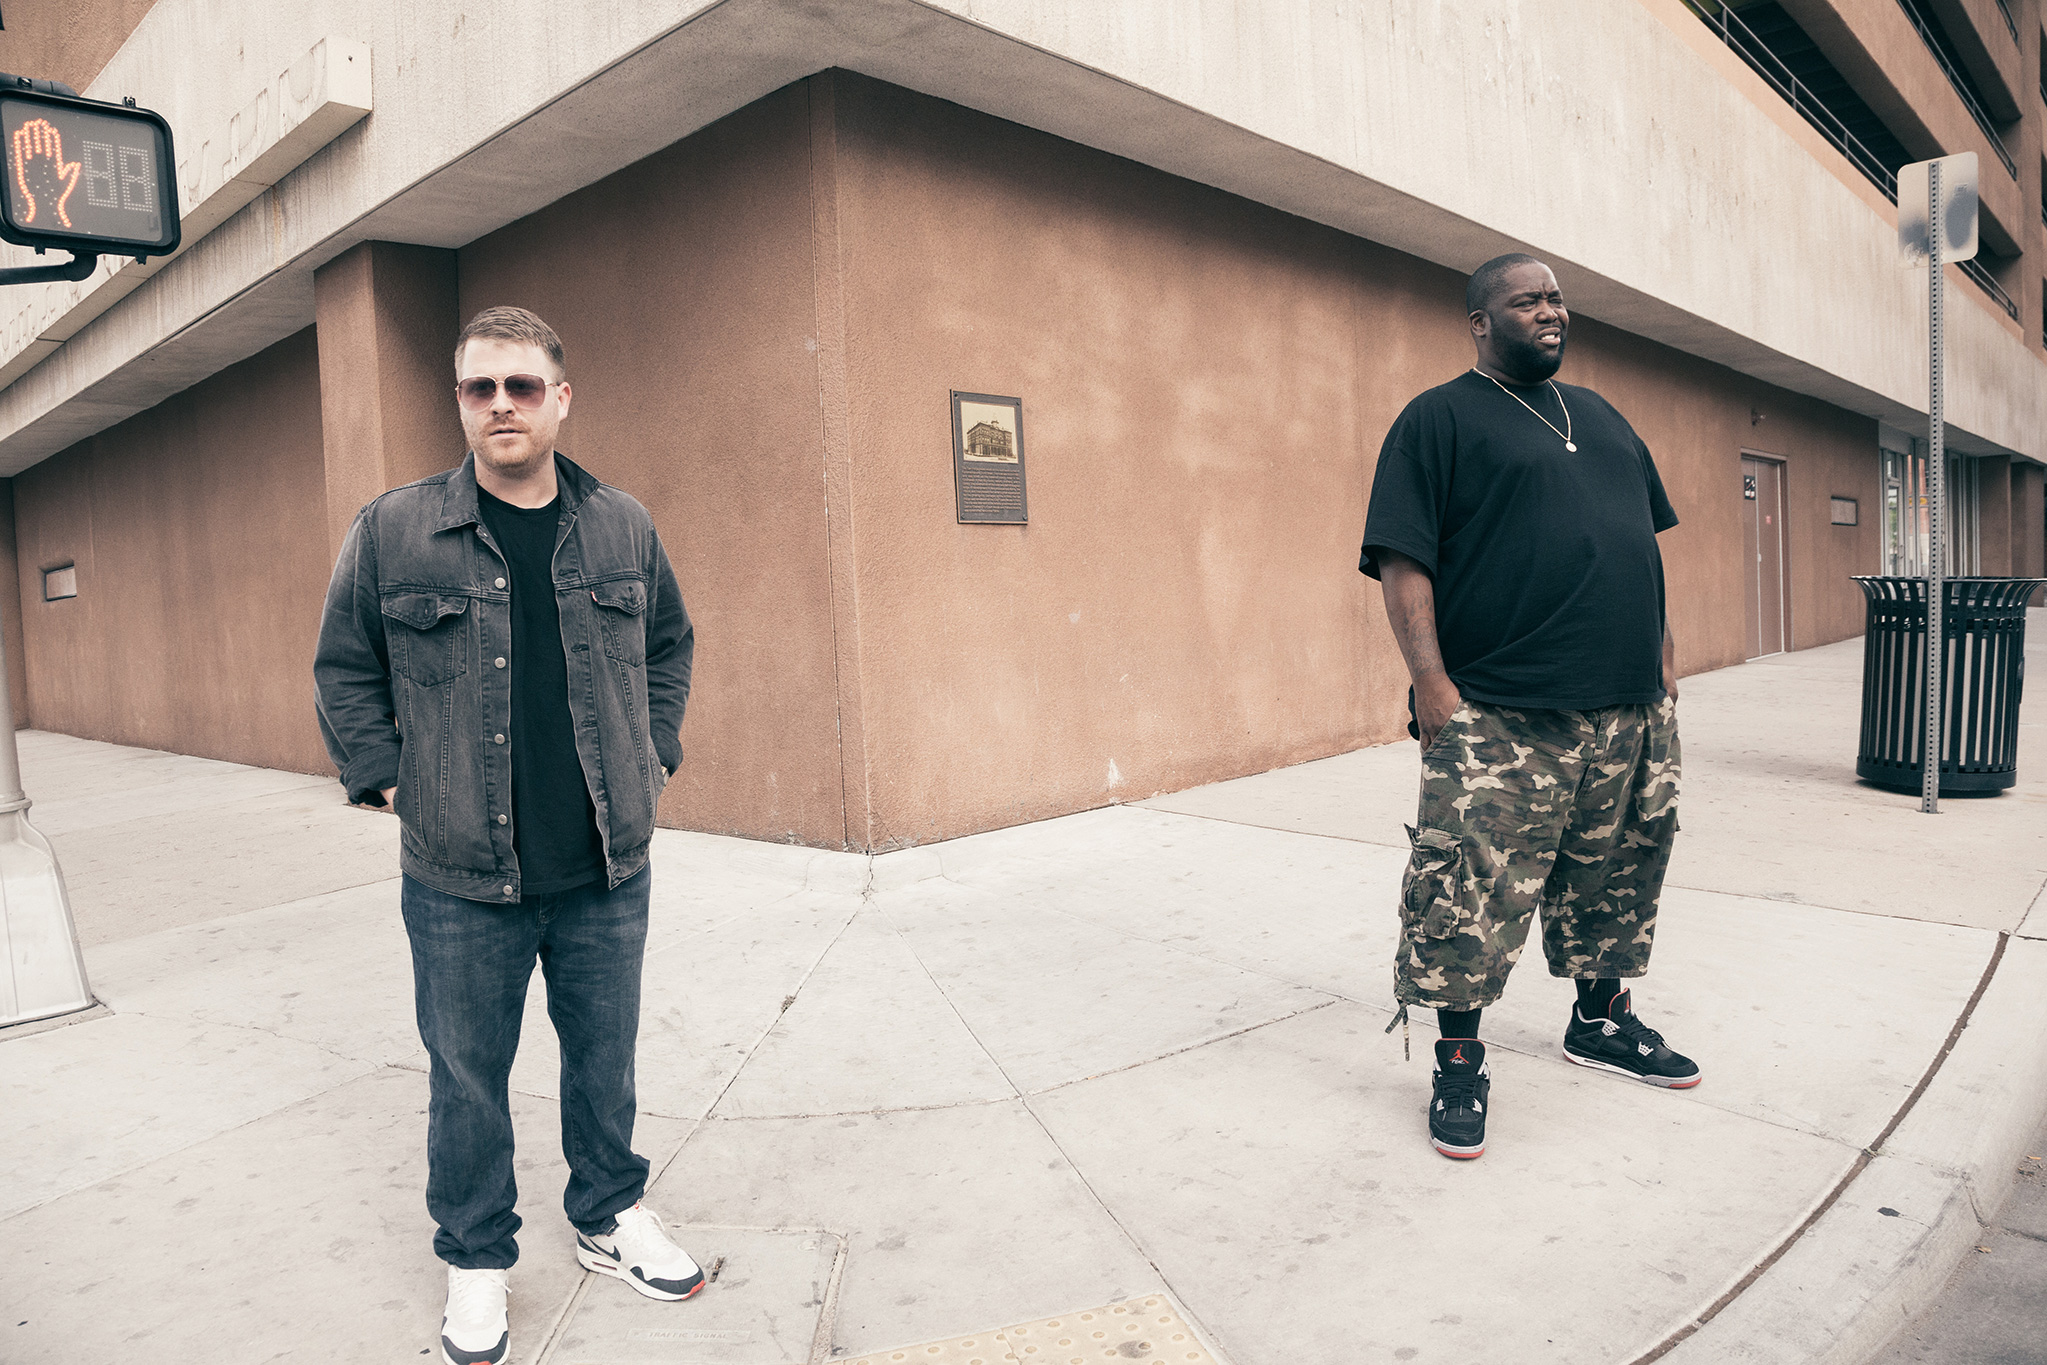 Marvel Comics honours Run the Jewels with another exclusive cover